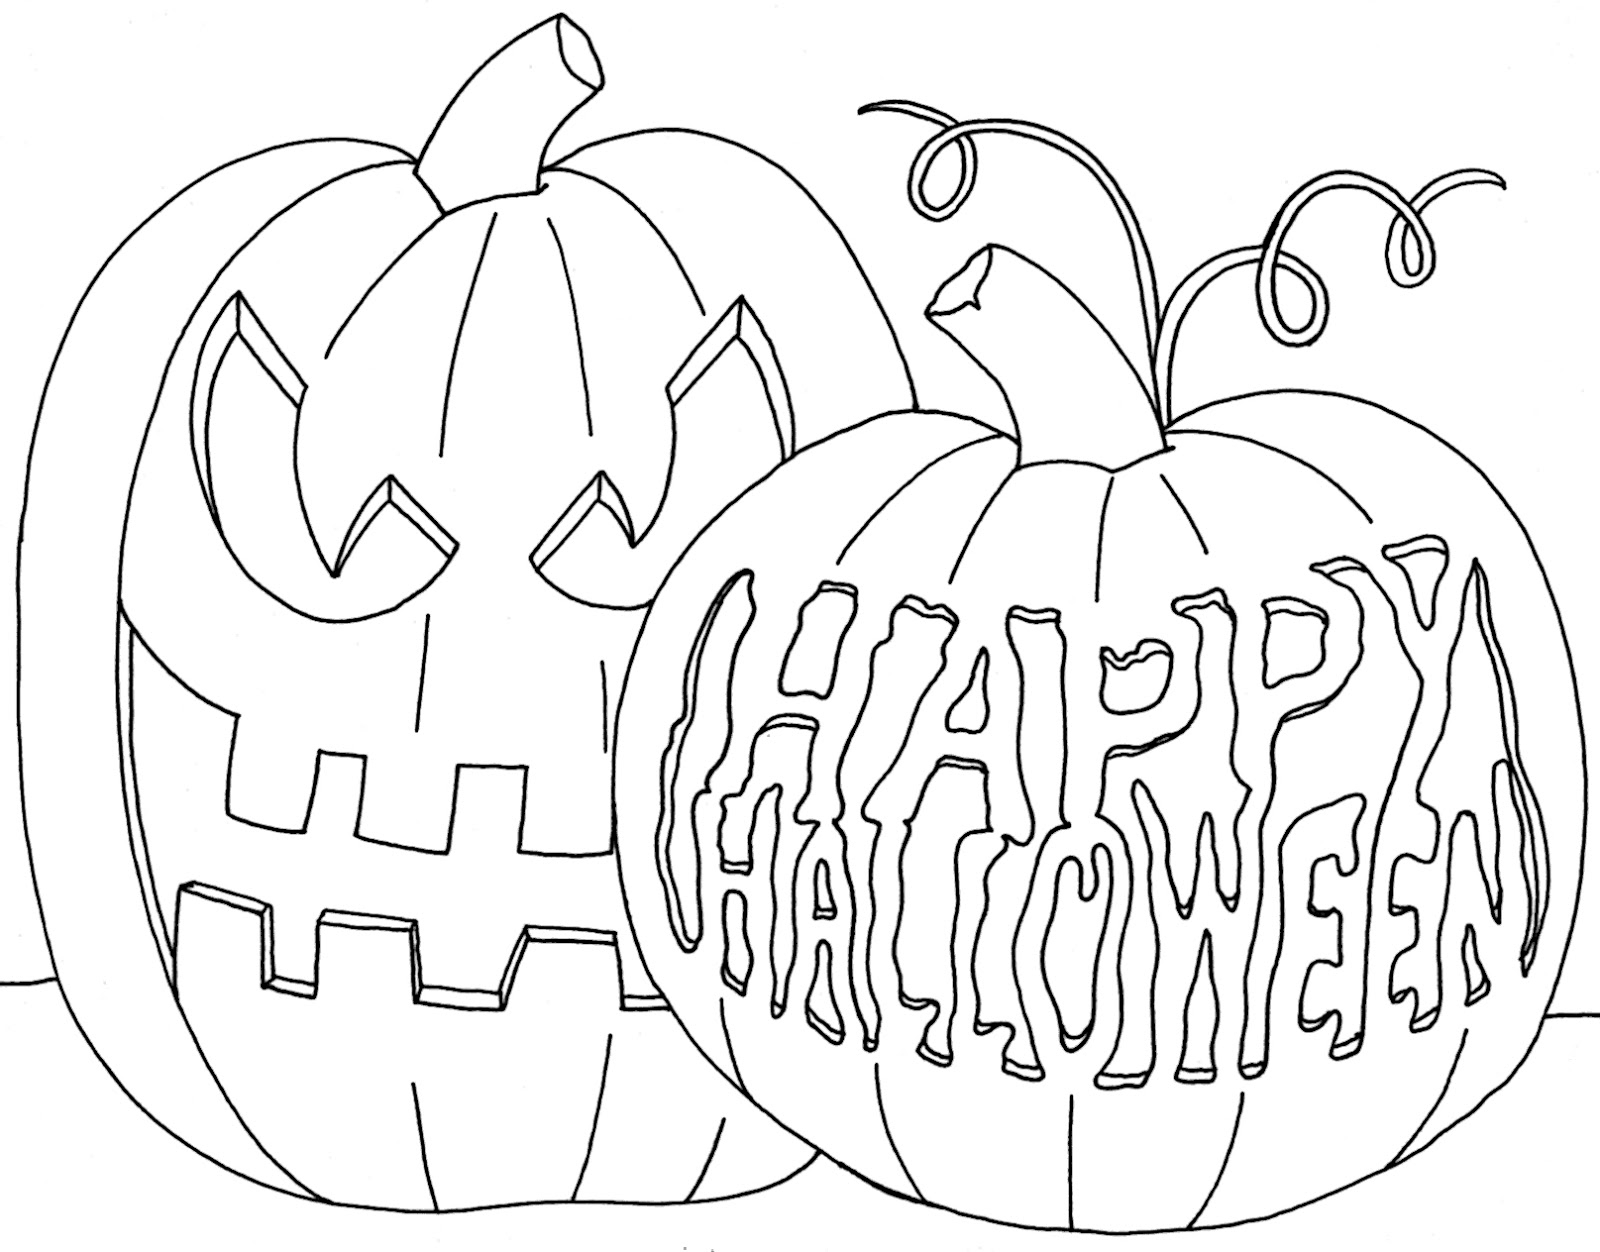 Free Scary Halloween Coloring Pages Coloring 55 Amazing Free Halloween Coloring Pages